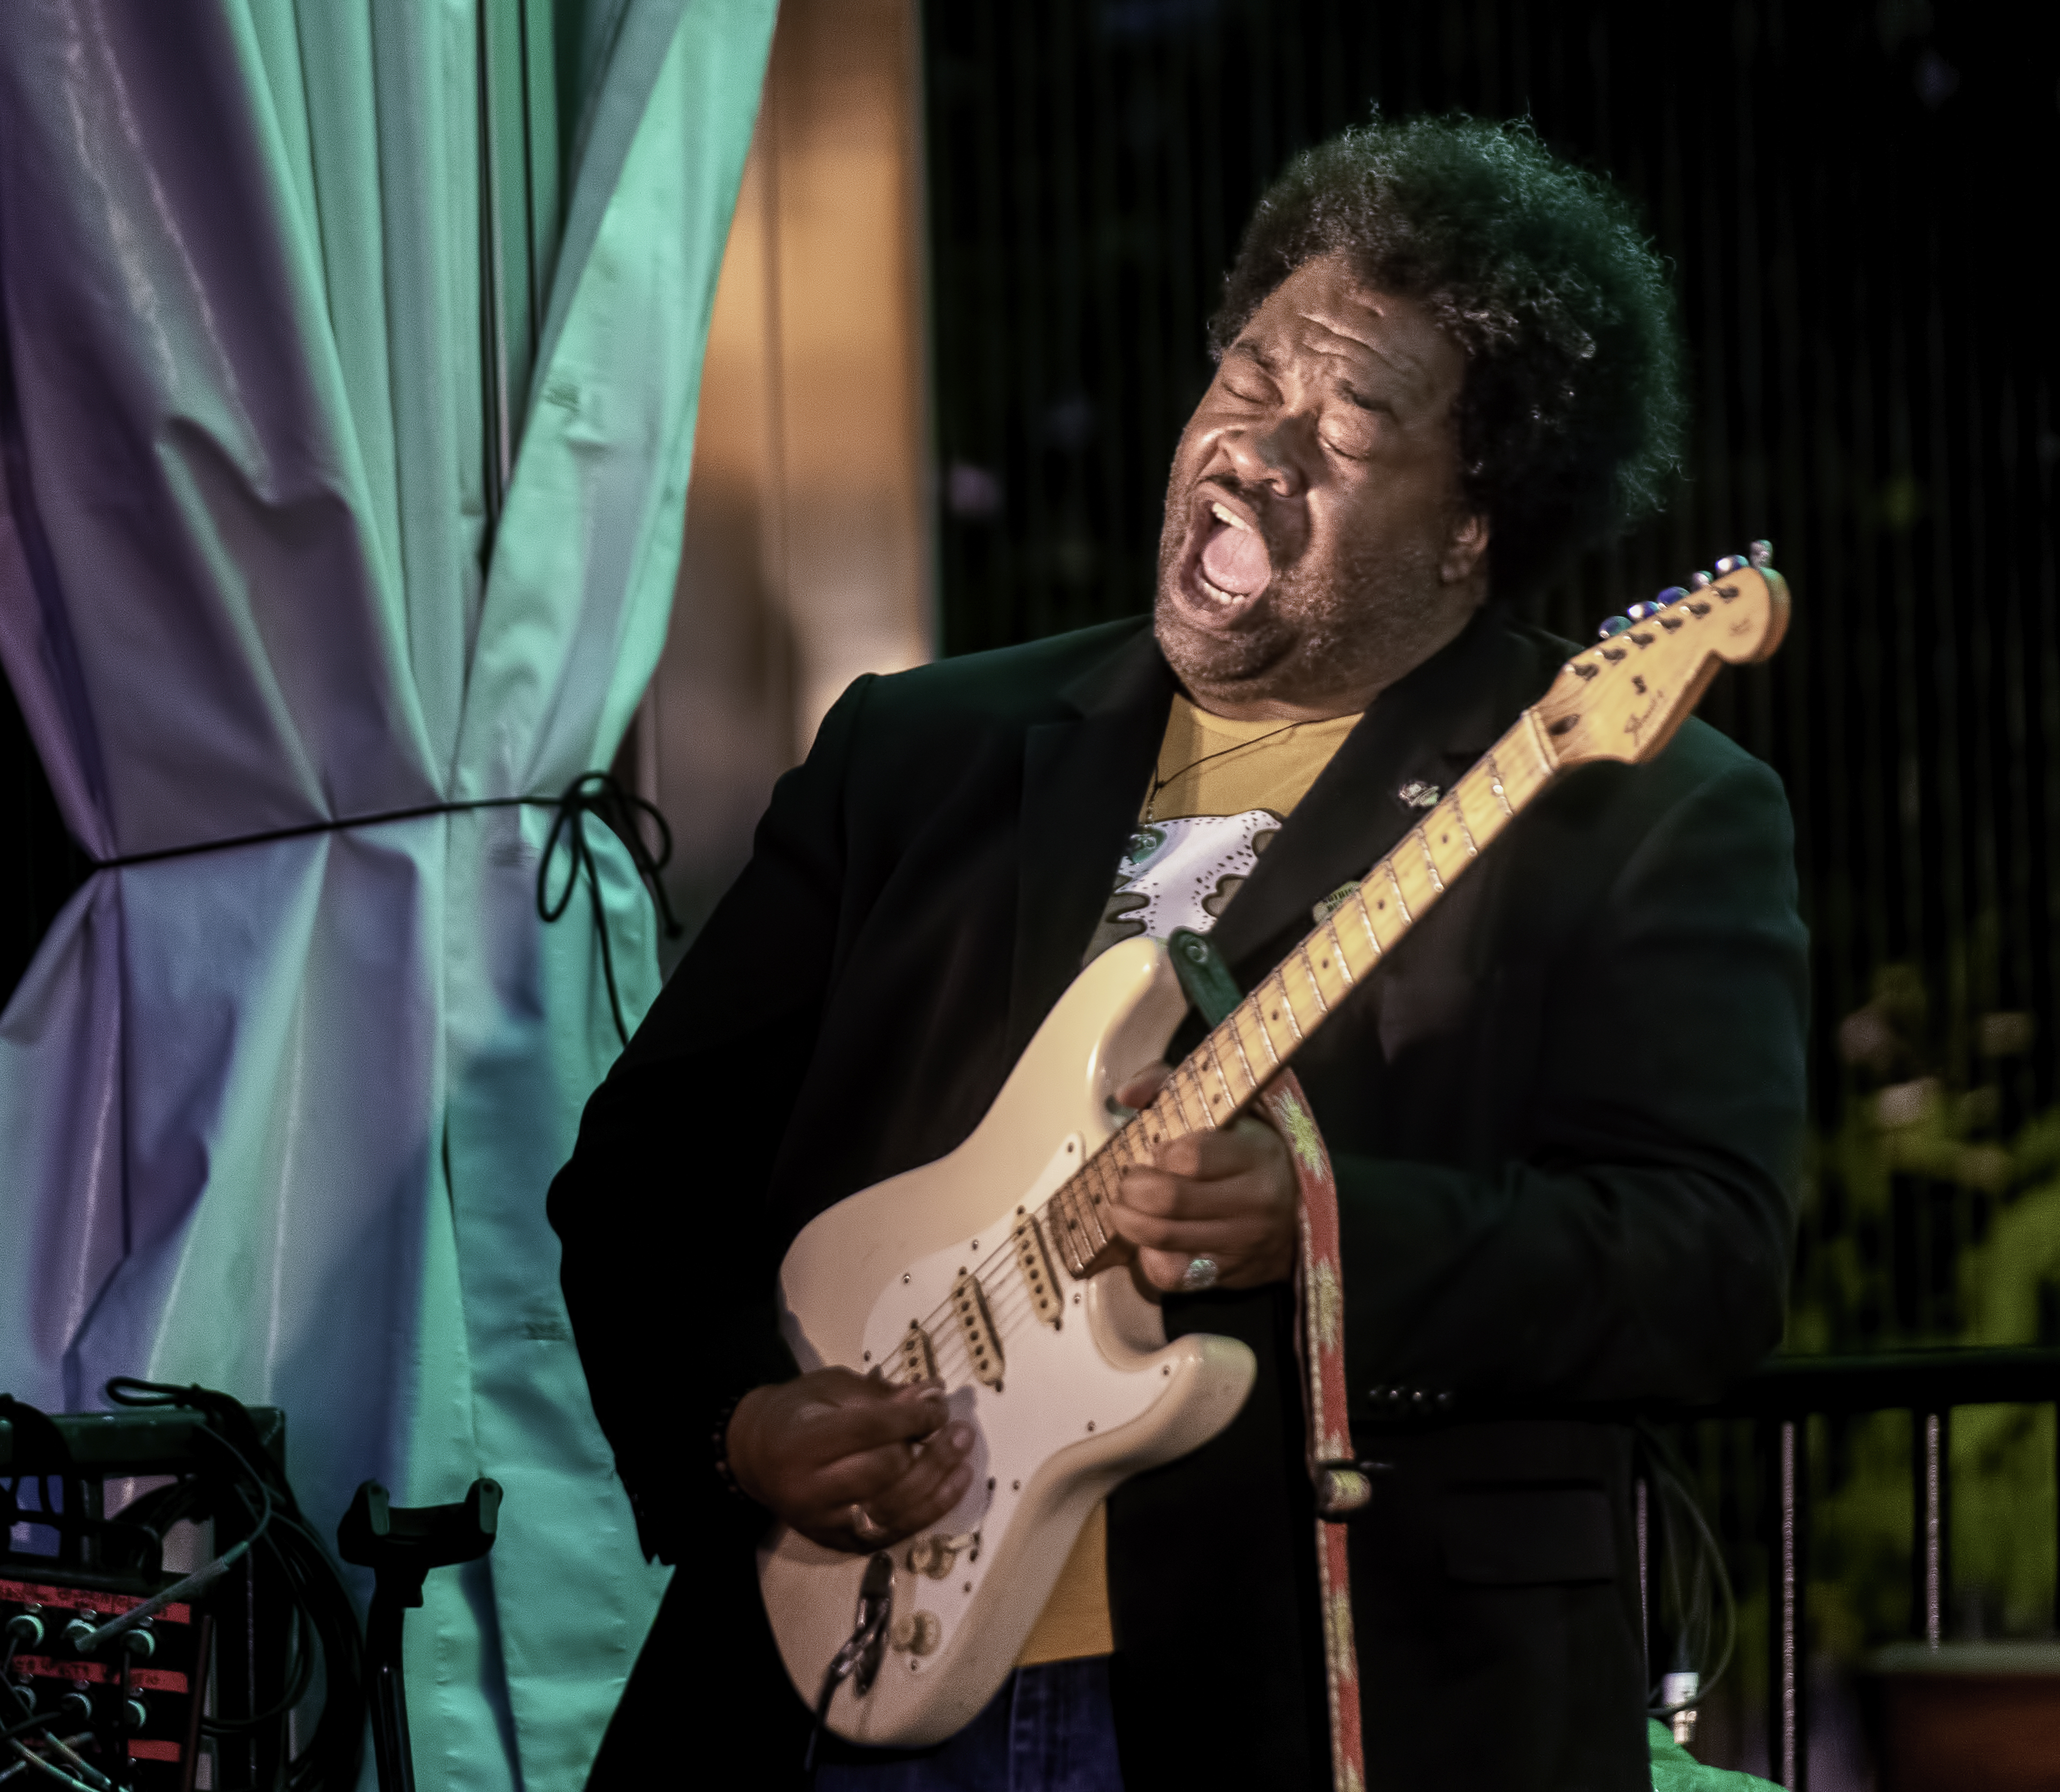 Jimmy James with the Delvon Lamarr Organ Trio at the Toronto Jazz Festival 2019